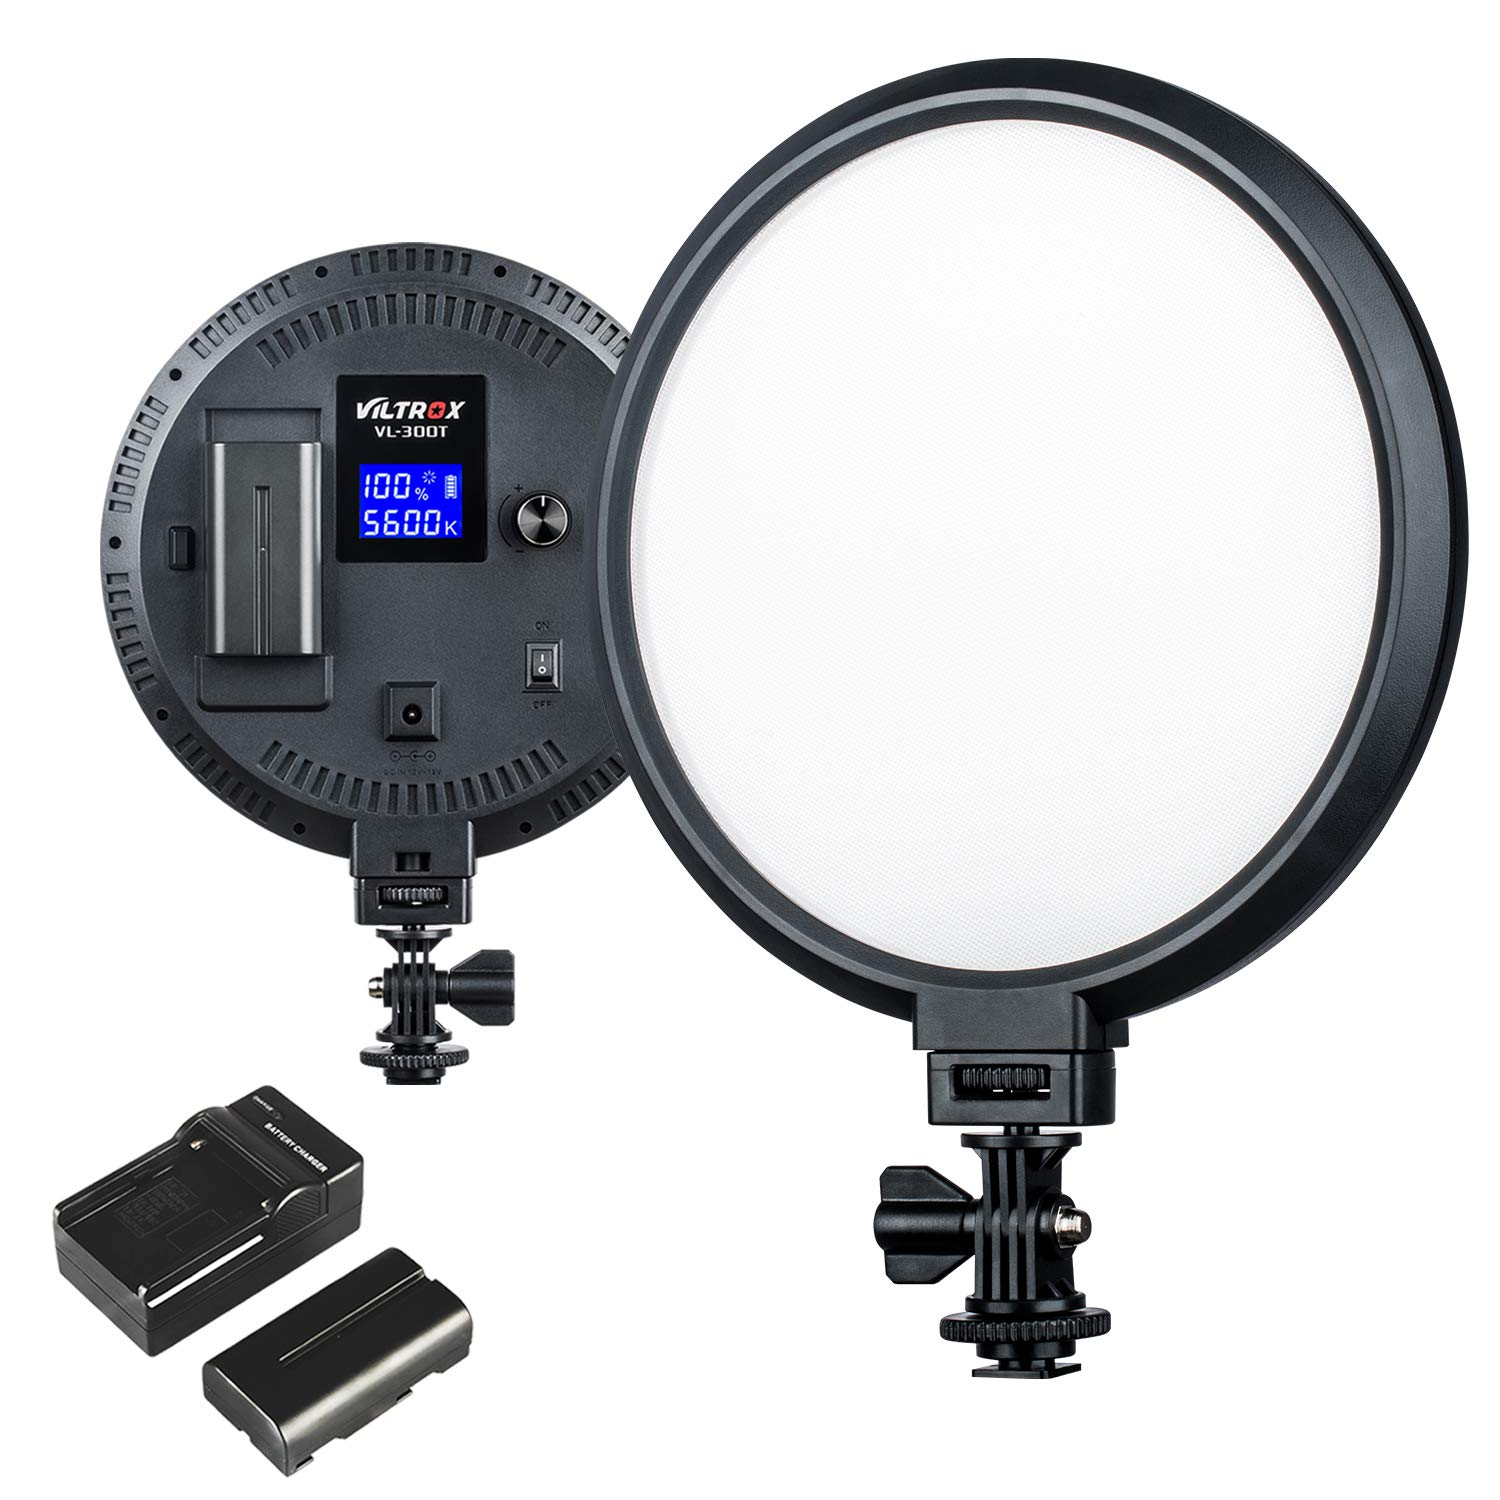 VILTROX VL-300T Bi-Color LED Camera Video Light, Dimmable Edge Flapjack Photo Light 8-Inch Round for Digital DSLR Camera and Camcorder with CRI 95+, 3300K~5600K, Battery and Charger Included by VILTROX